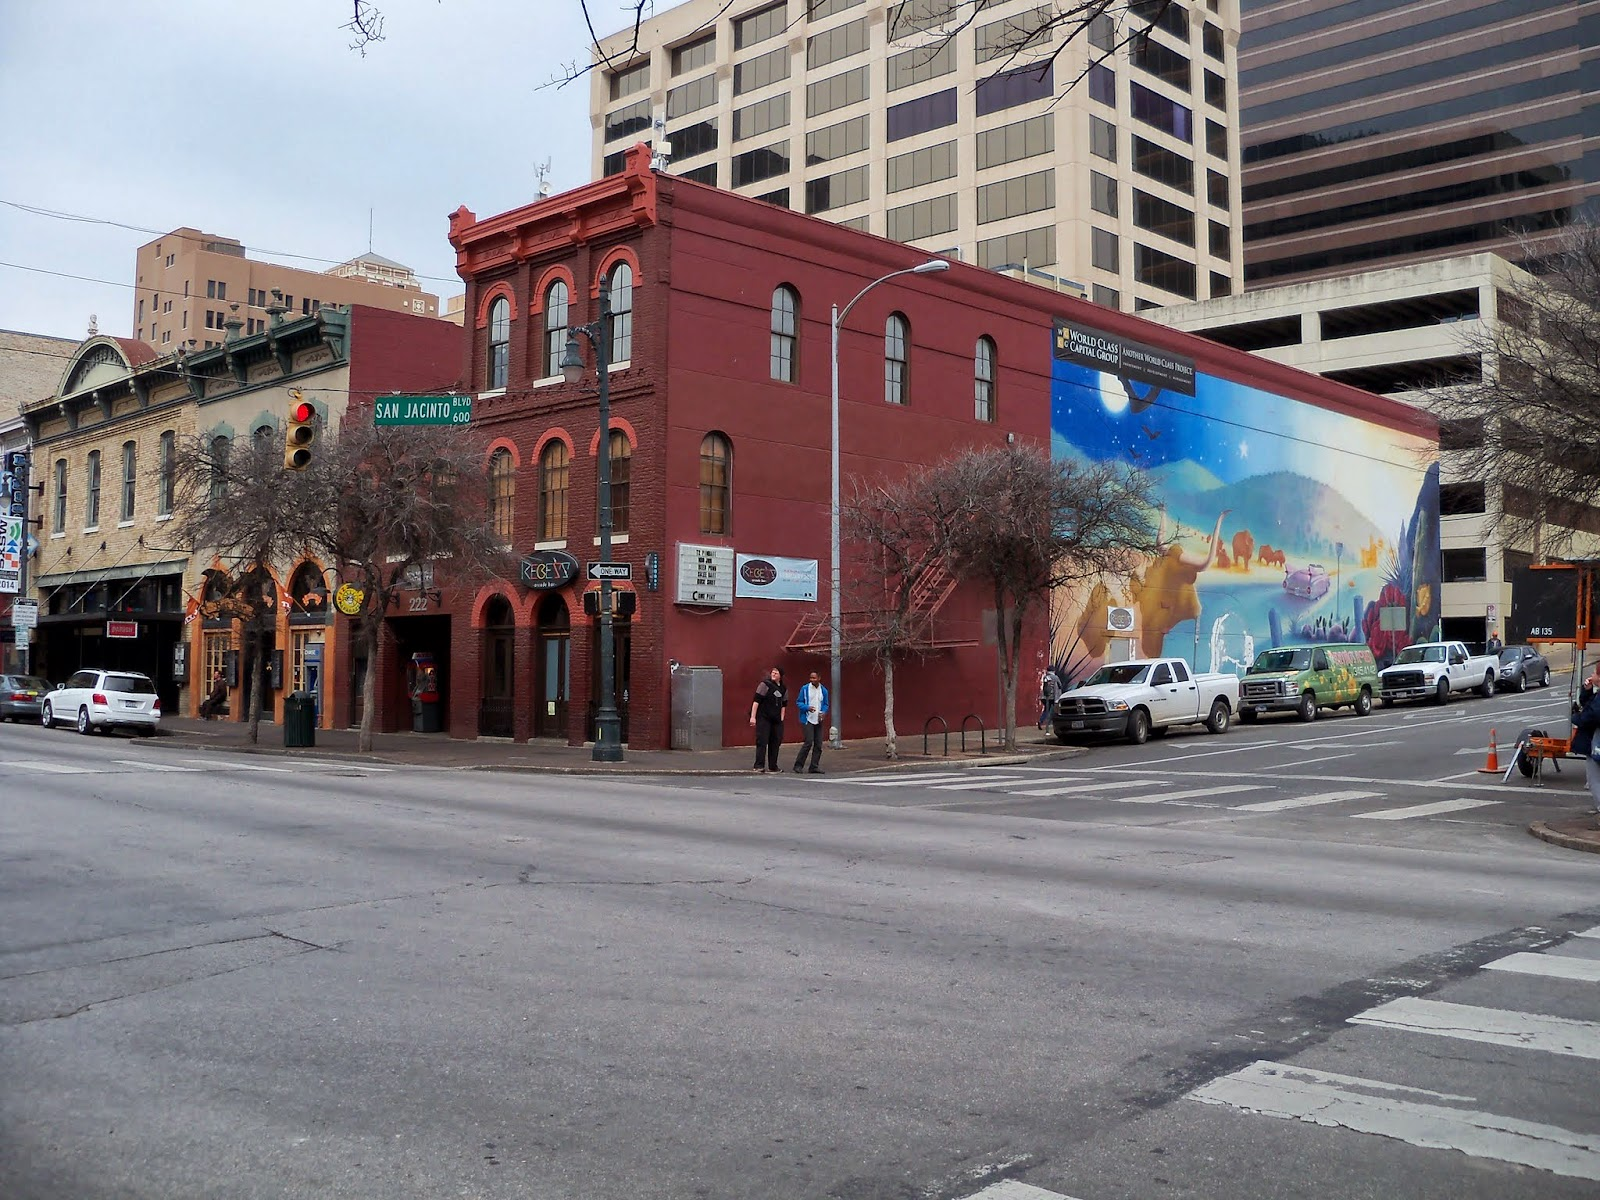 Austin, Texas for SXSWedu - 116_0906.JPG